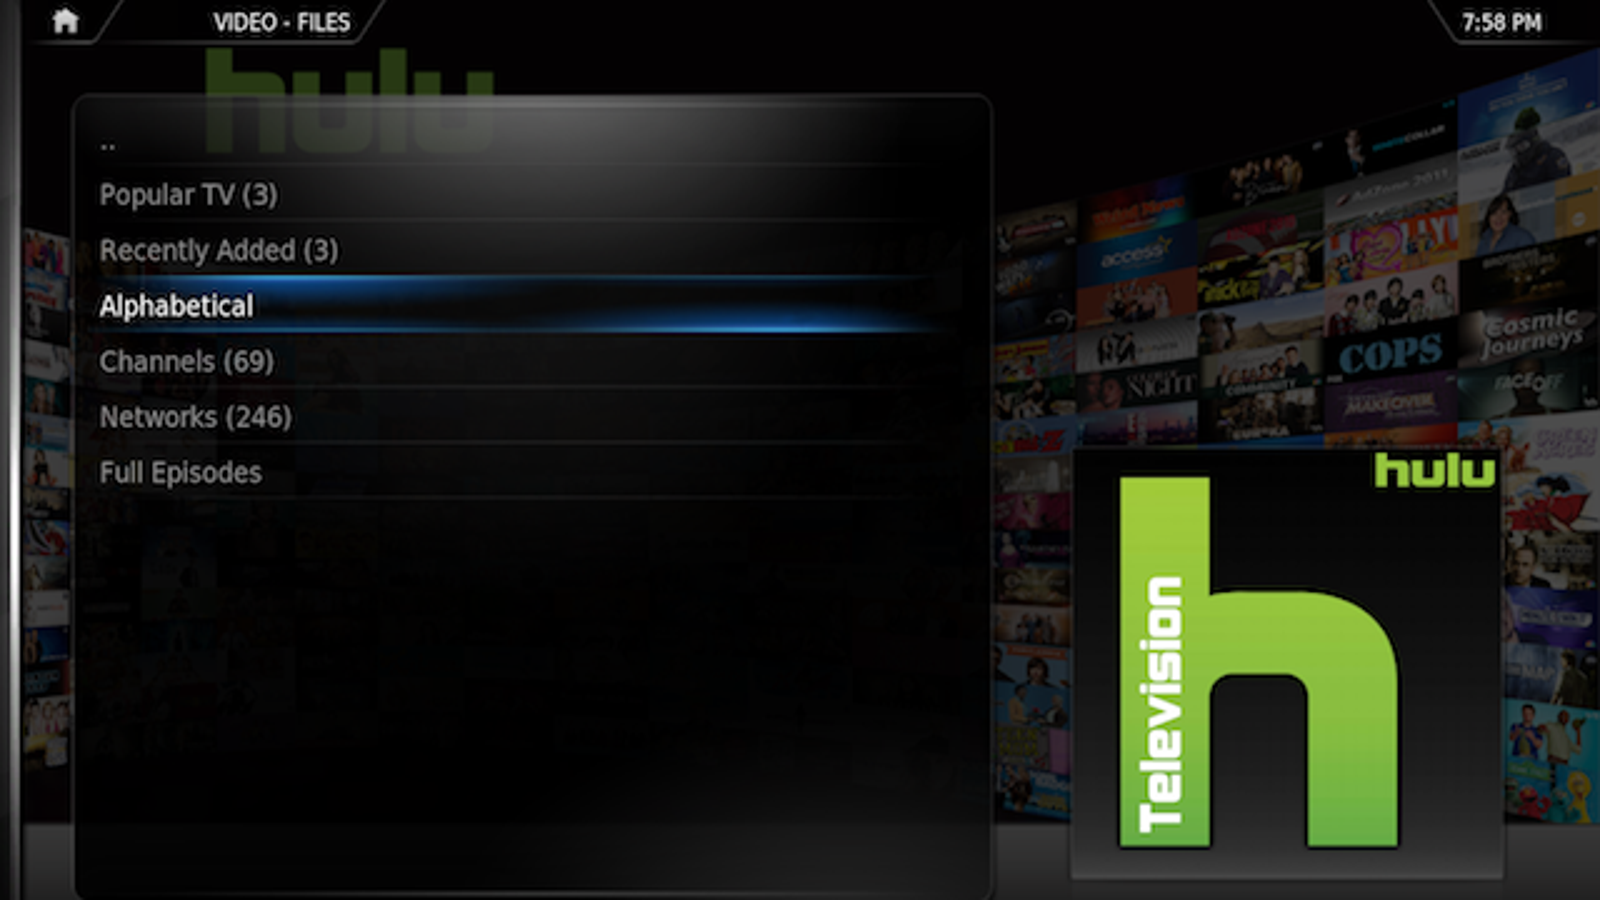 How to Add Hulu and Hulu Plus to XBMC (Again) [UPDATED]